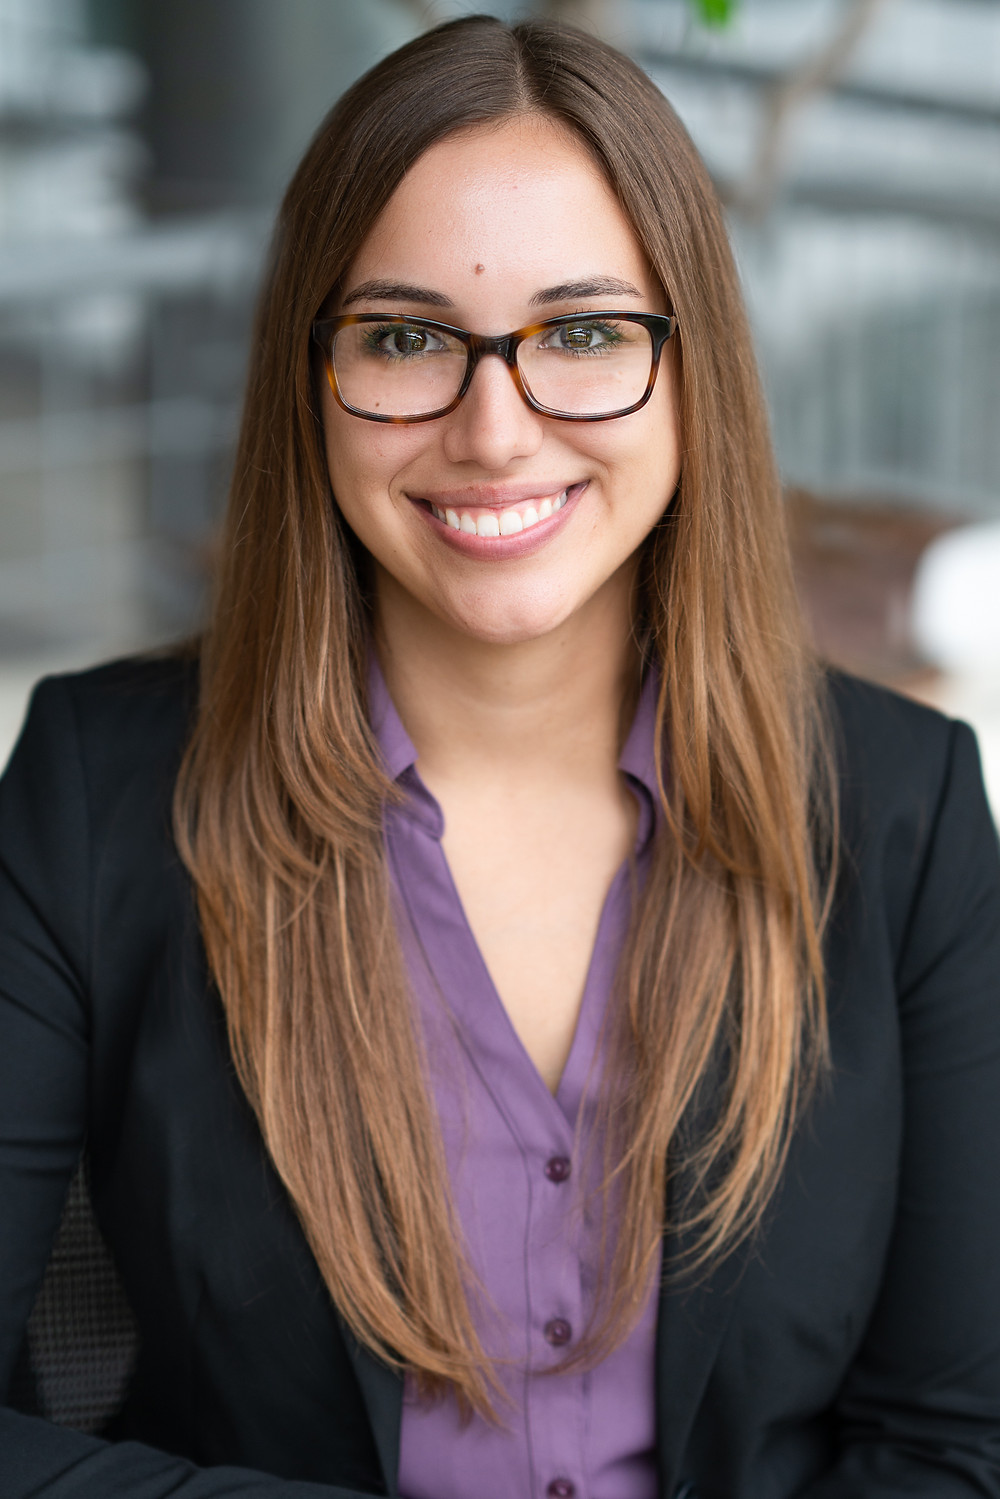 A woman wearing glasses smiling for commercial headshot portrait